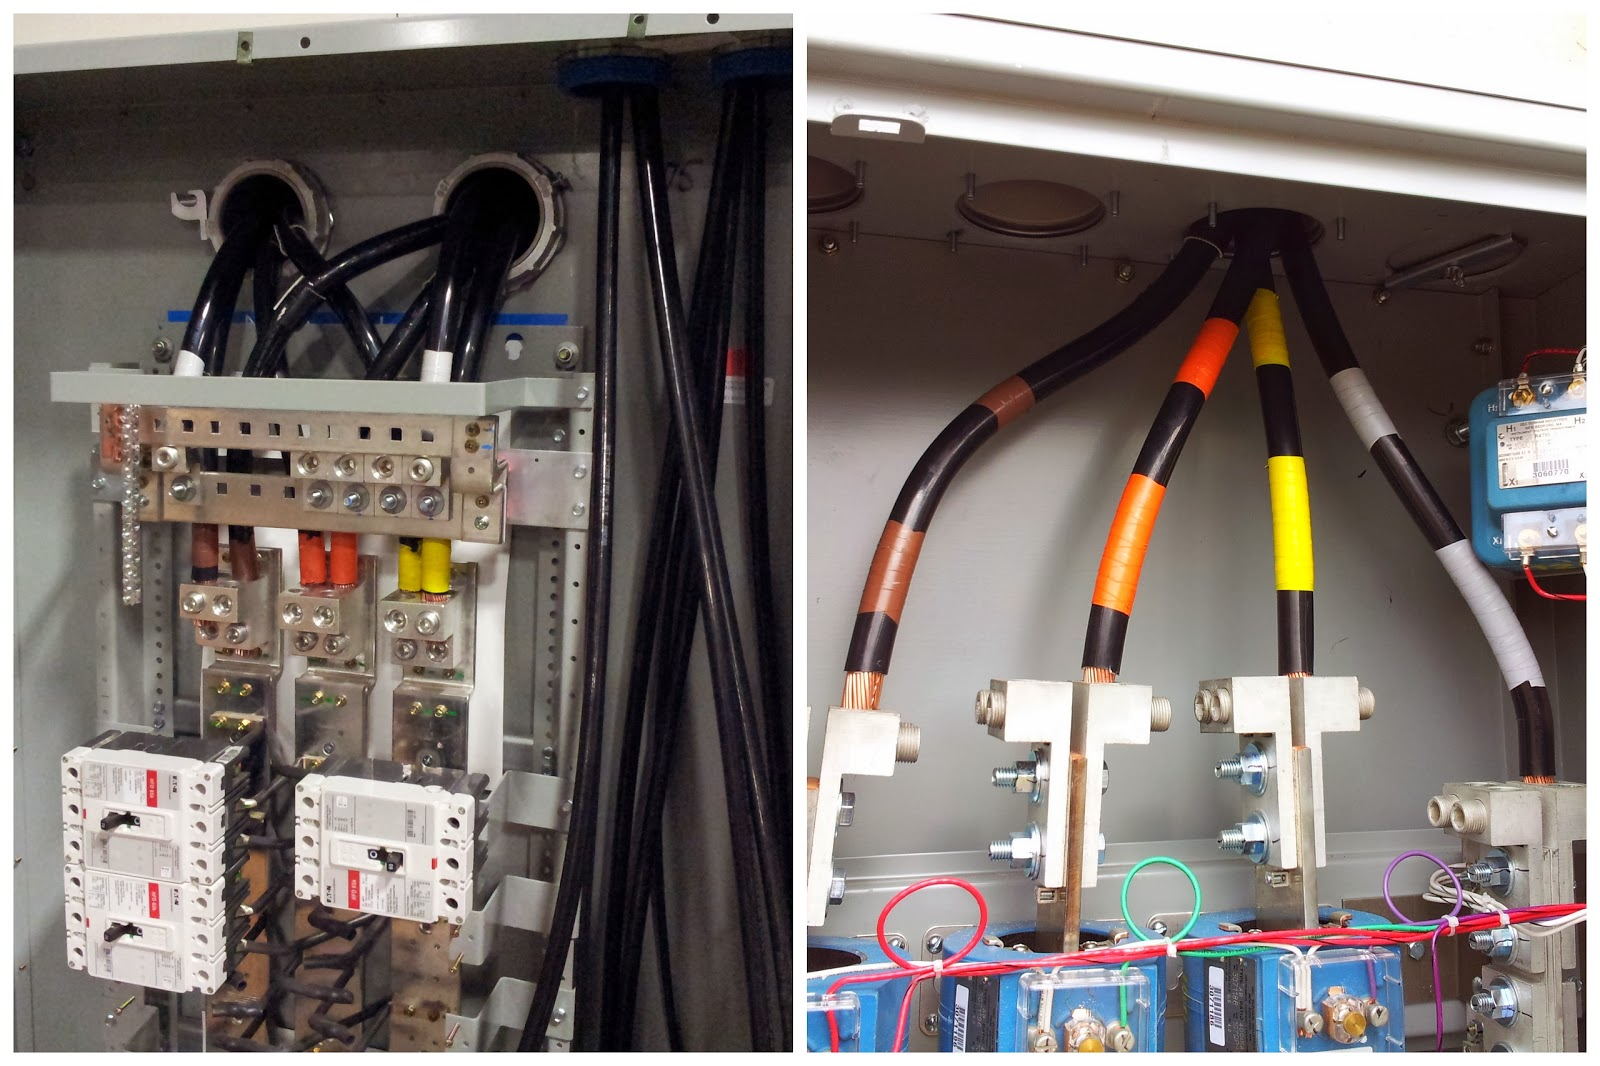 480 Volt 3 Phase Wire Size Karmashares Llc Leveraging Motor Wiring Diagram Lindy Weston How We Installed A New Electrical Service Vac